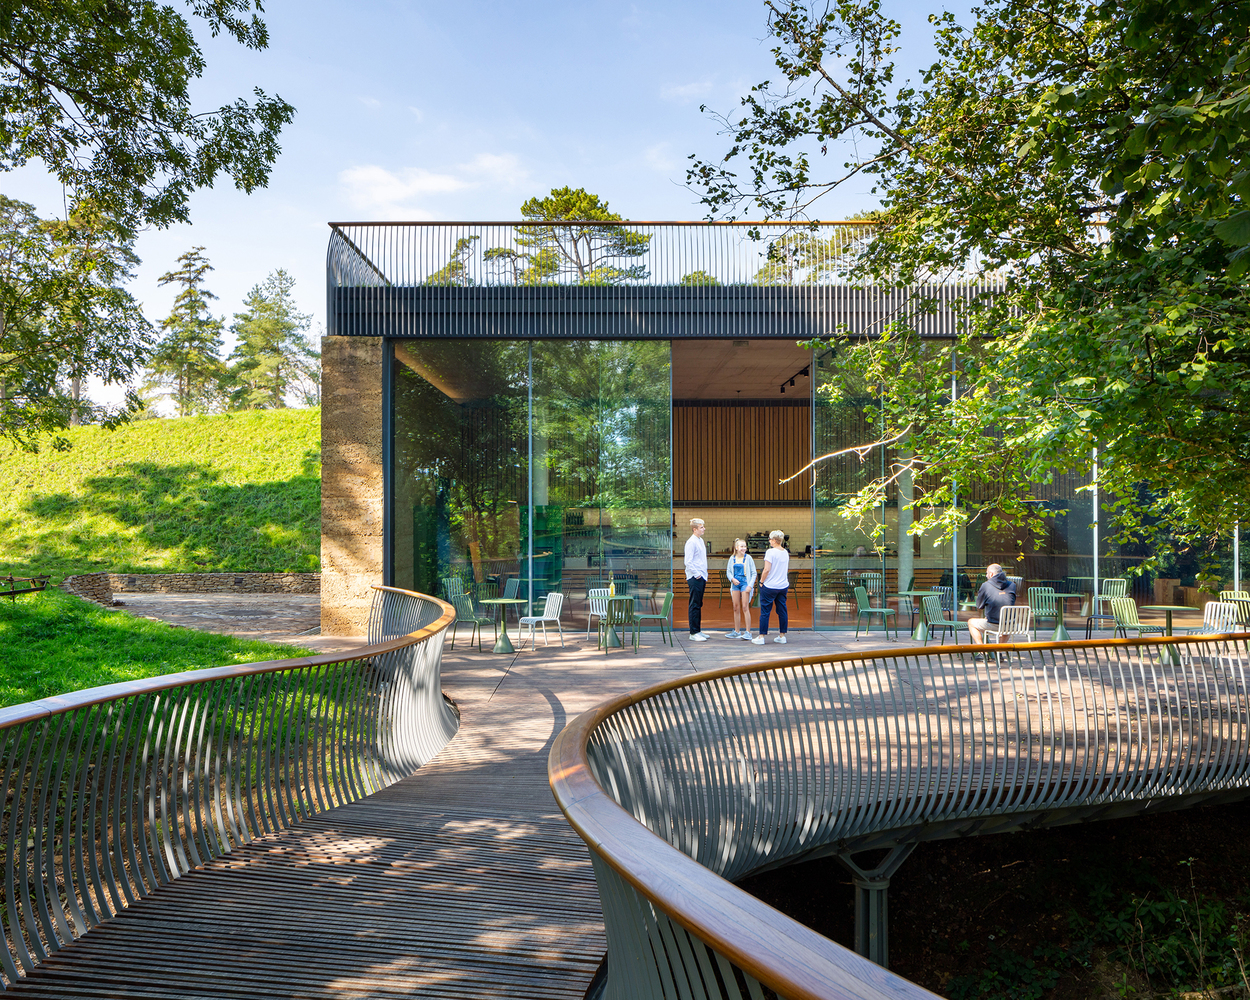 RIBA Announces 2021 National Award Winners Highlighting UK's Best New Buildings,The Story of Gardening Museum (Somerset) by Stonewood Design with Mark Thomas Architects and Henry Fagan Engineering . Image © Craig Auckland